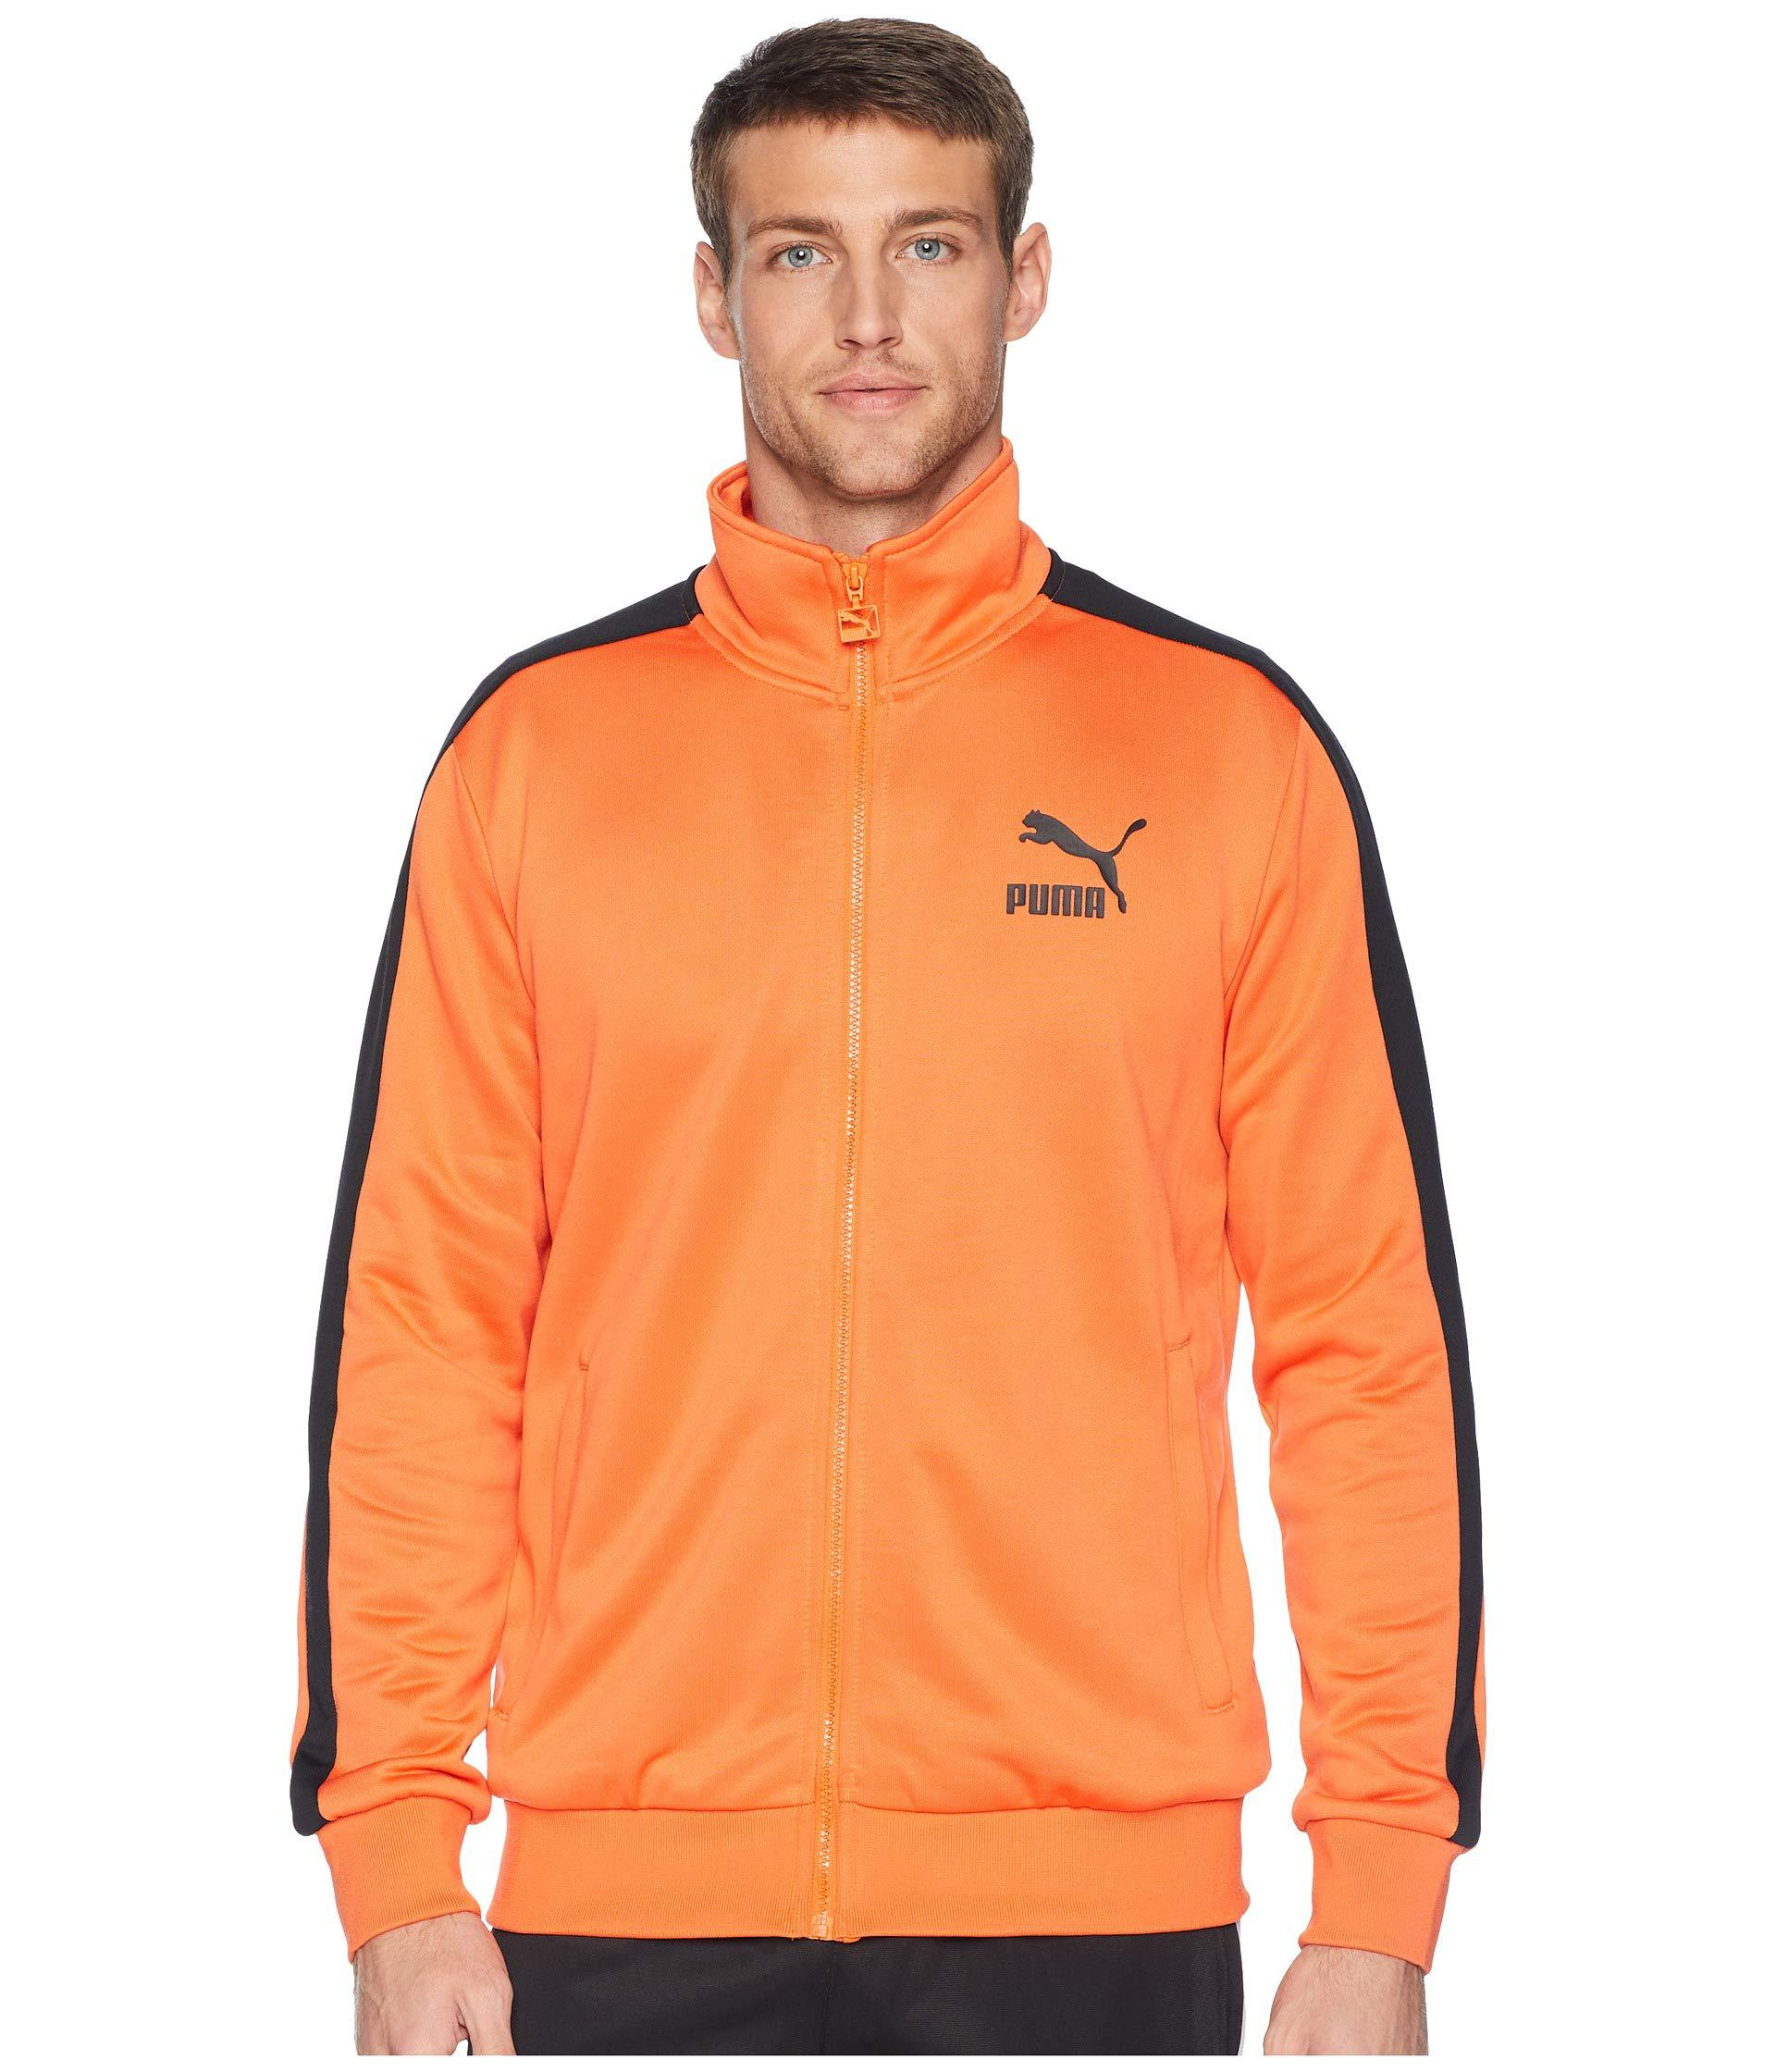 a231181208a4 Lyst - PUMA Classics T7 Track Jacket in Orange for Men - Save 42%